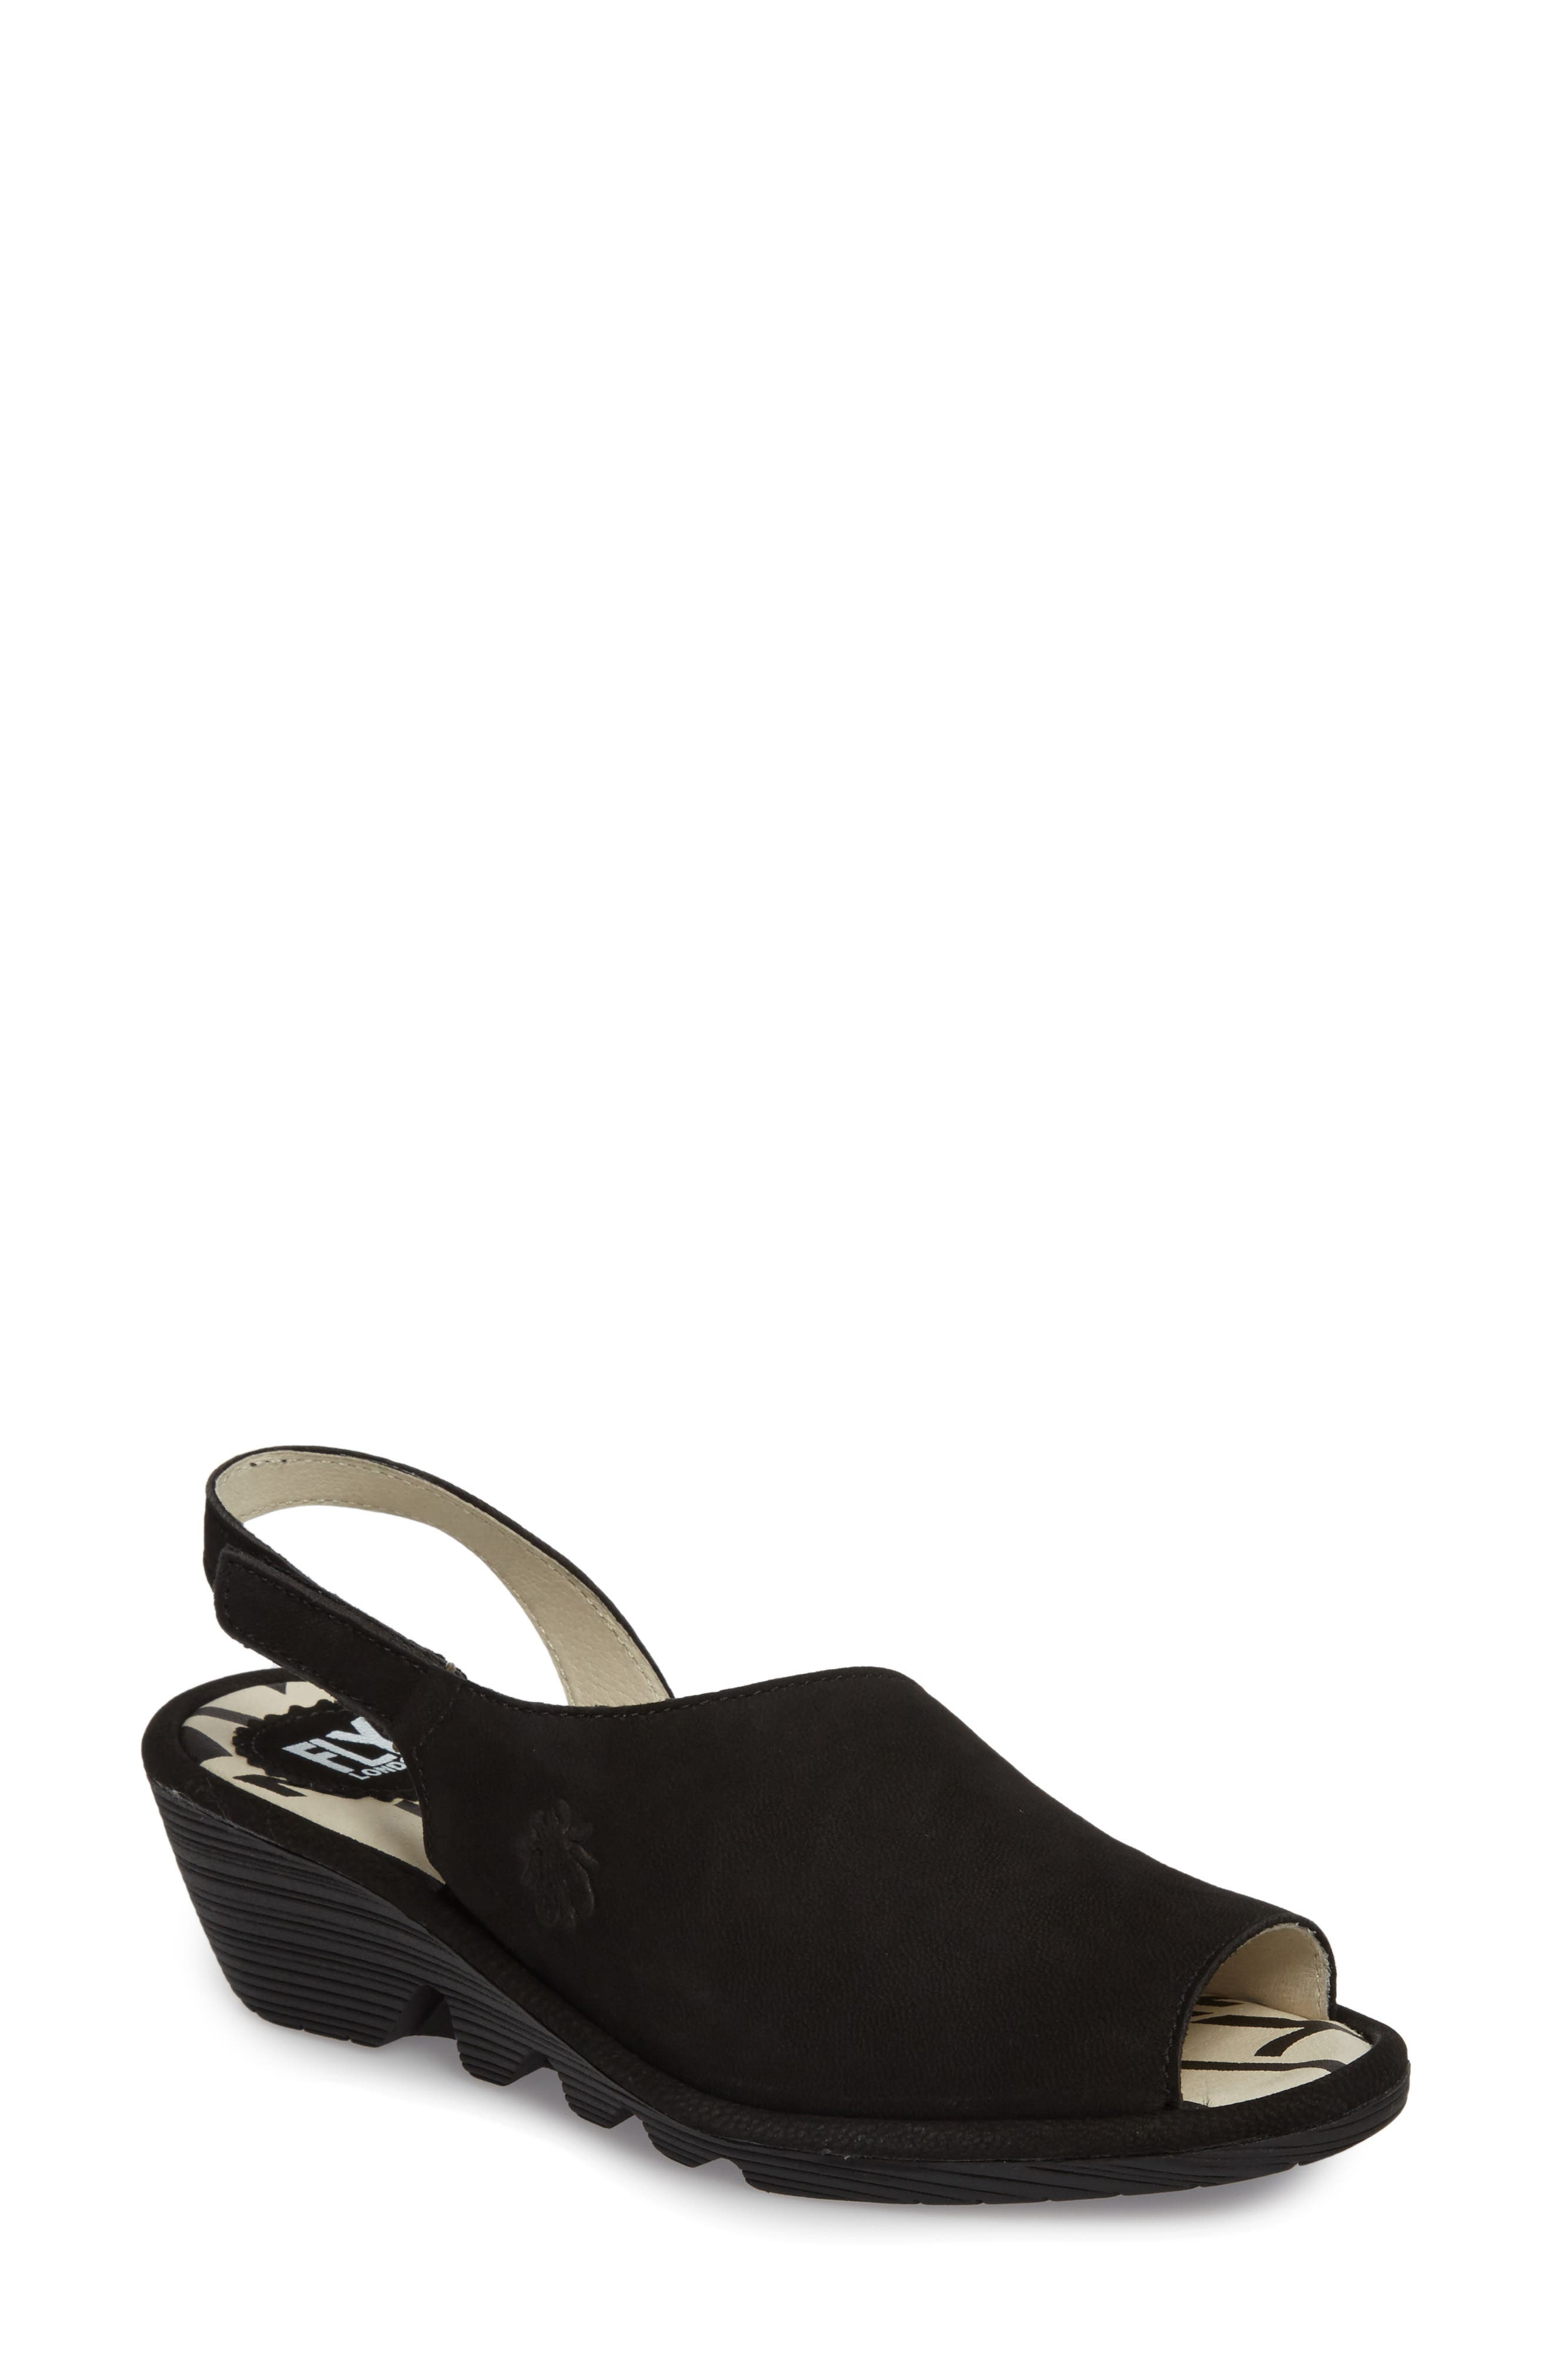 Palp Wedge Sandal,                             Main thumbnail 1, color,                             BLACK CUPIDO LEATHER